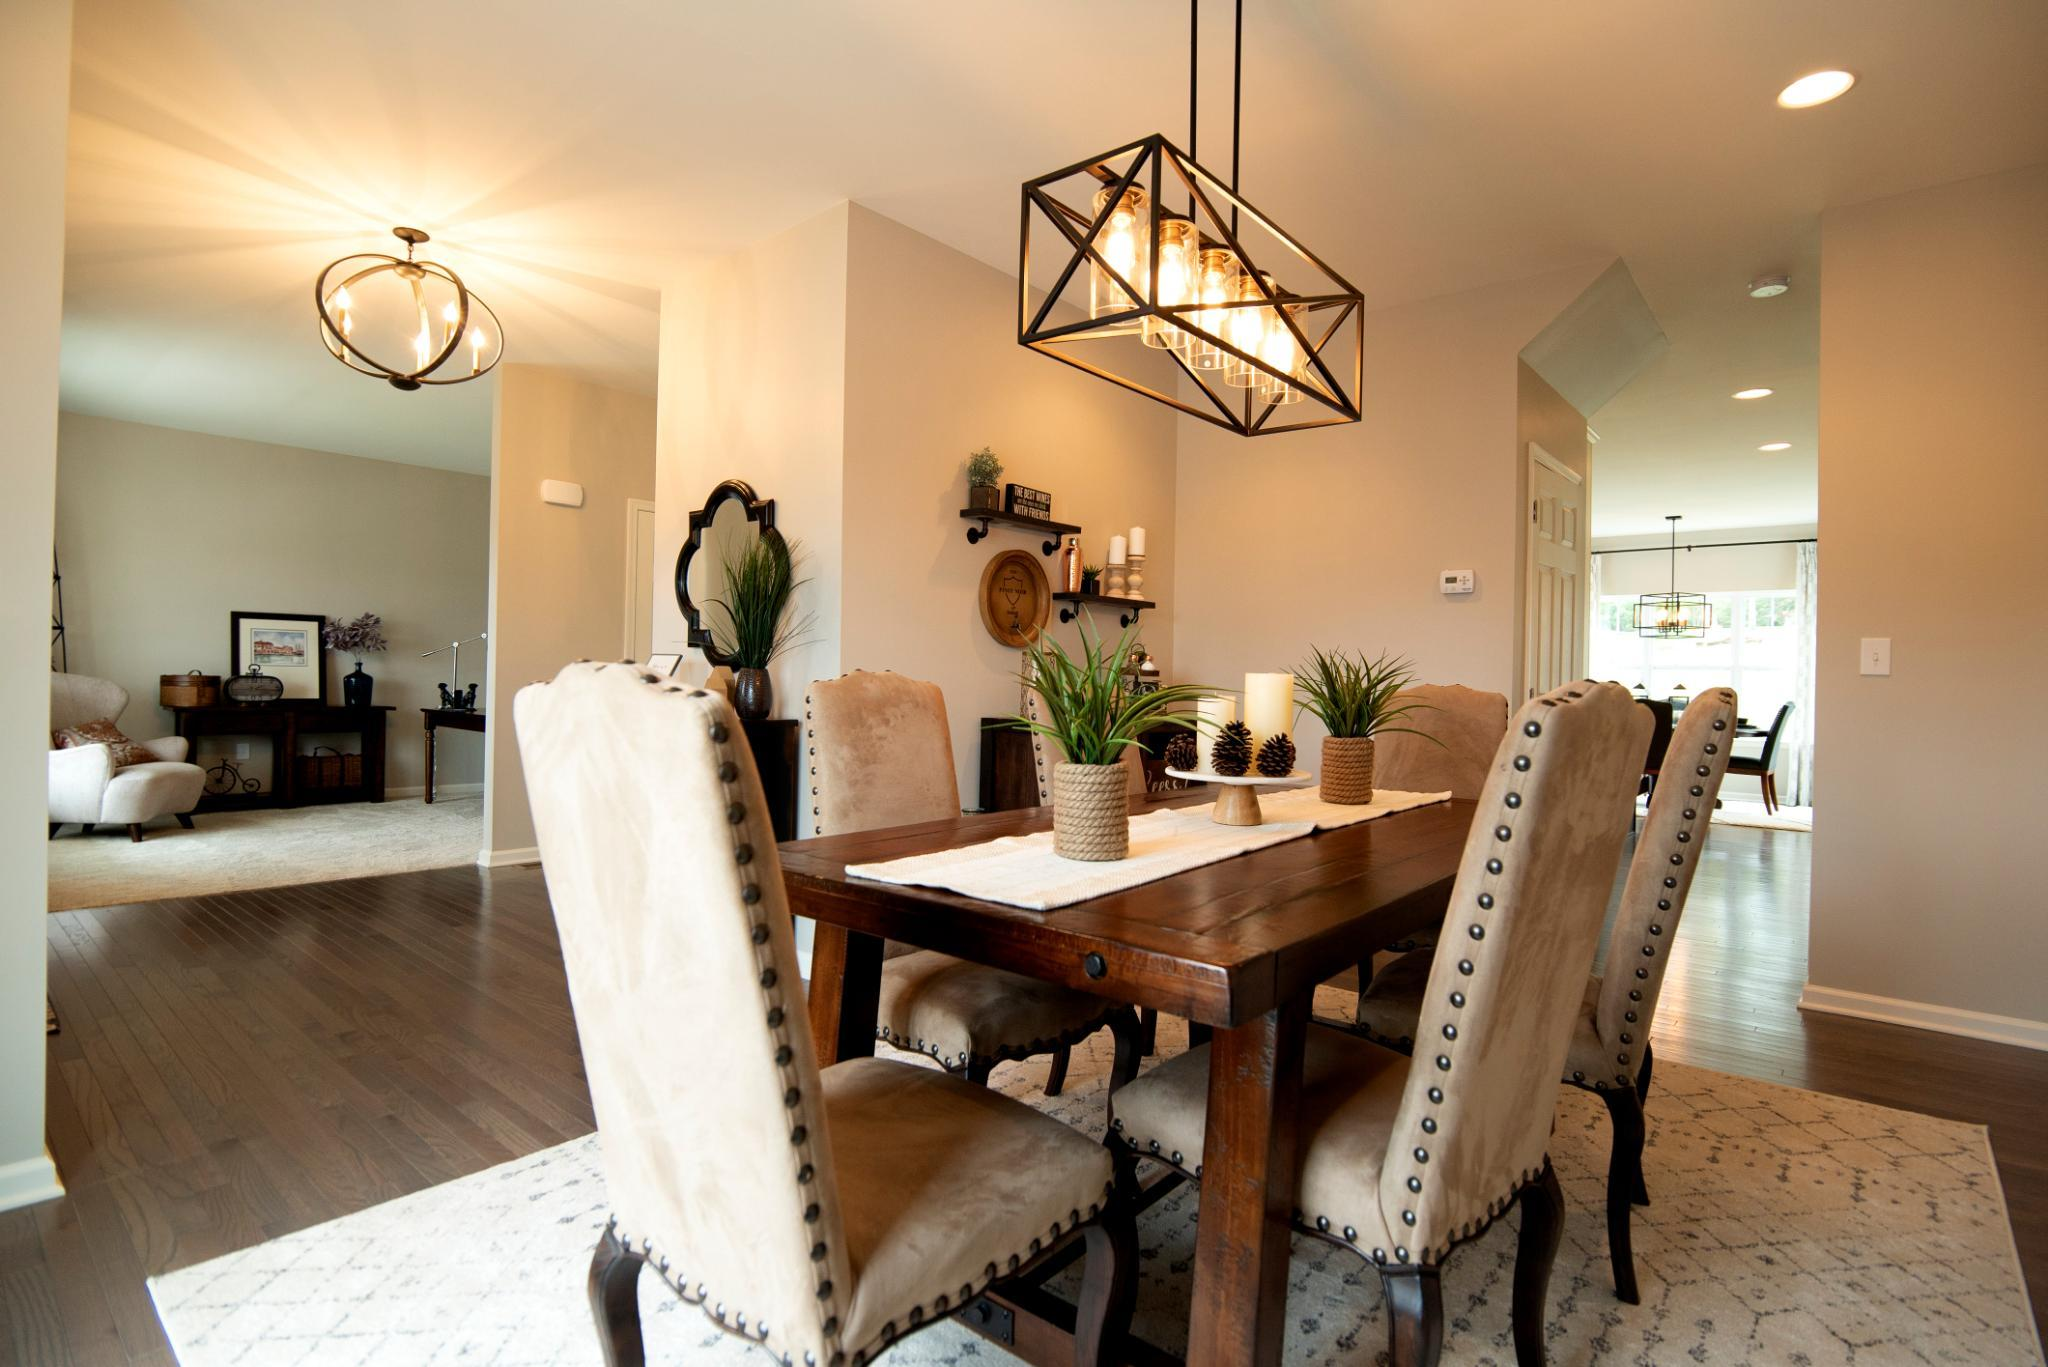 Living Area featured in the Kingston Traditional By Tuskes Homes in Allentown-Bethlehem, PA